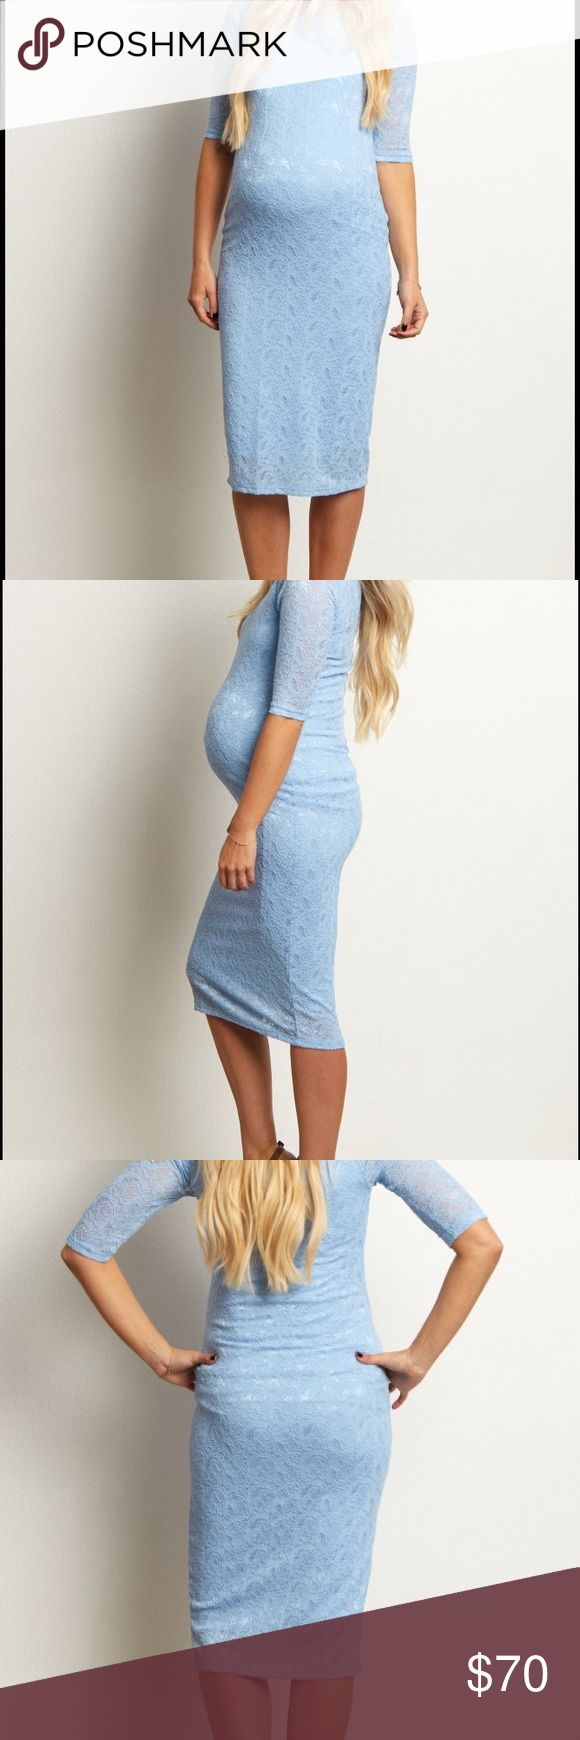 Powder blue lace maternity dress NEVER WORN Perfect for an evening out, this fitted lace maternity dress is flexible for any occasion. Pair with a classic heel and statement necklace to look and feel amazing all night long. Pinkblush Dresses